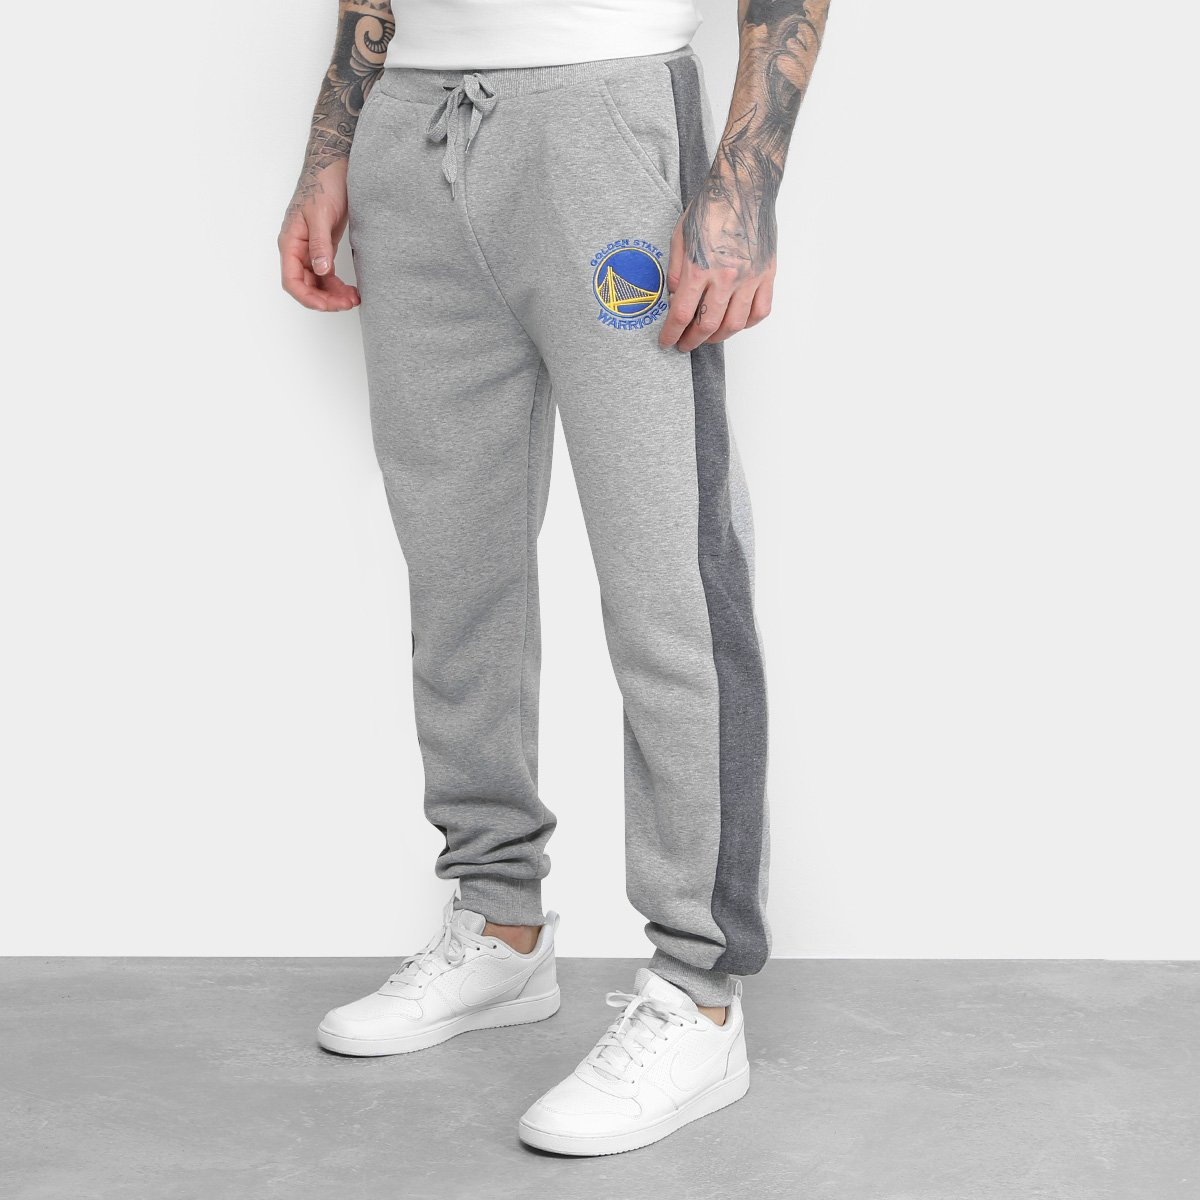 cafc85456ca68 Calça Moletom NBA Golden State Warriors Masculina | Loja NBA